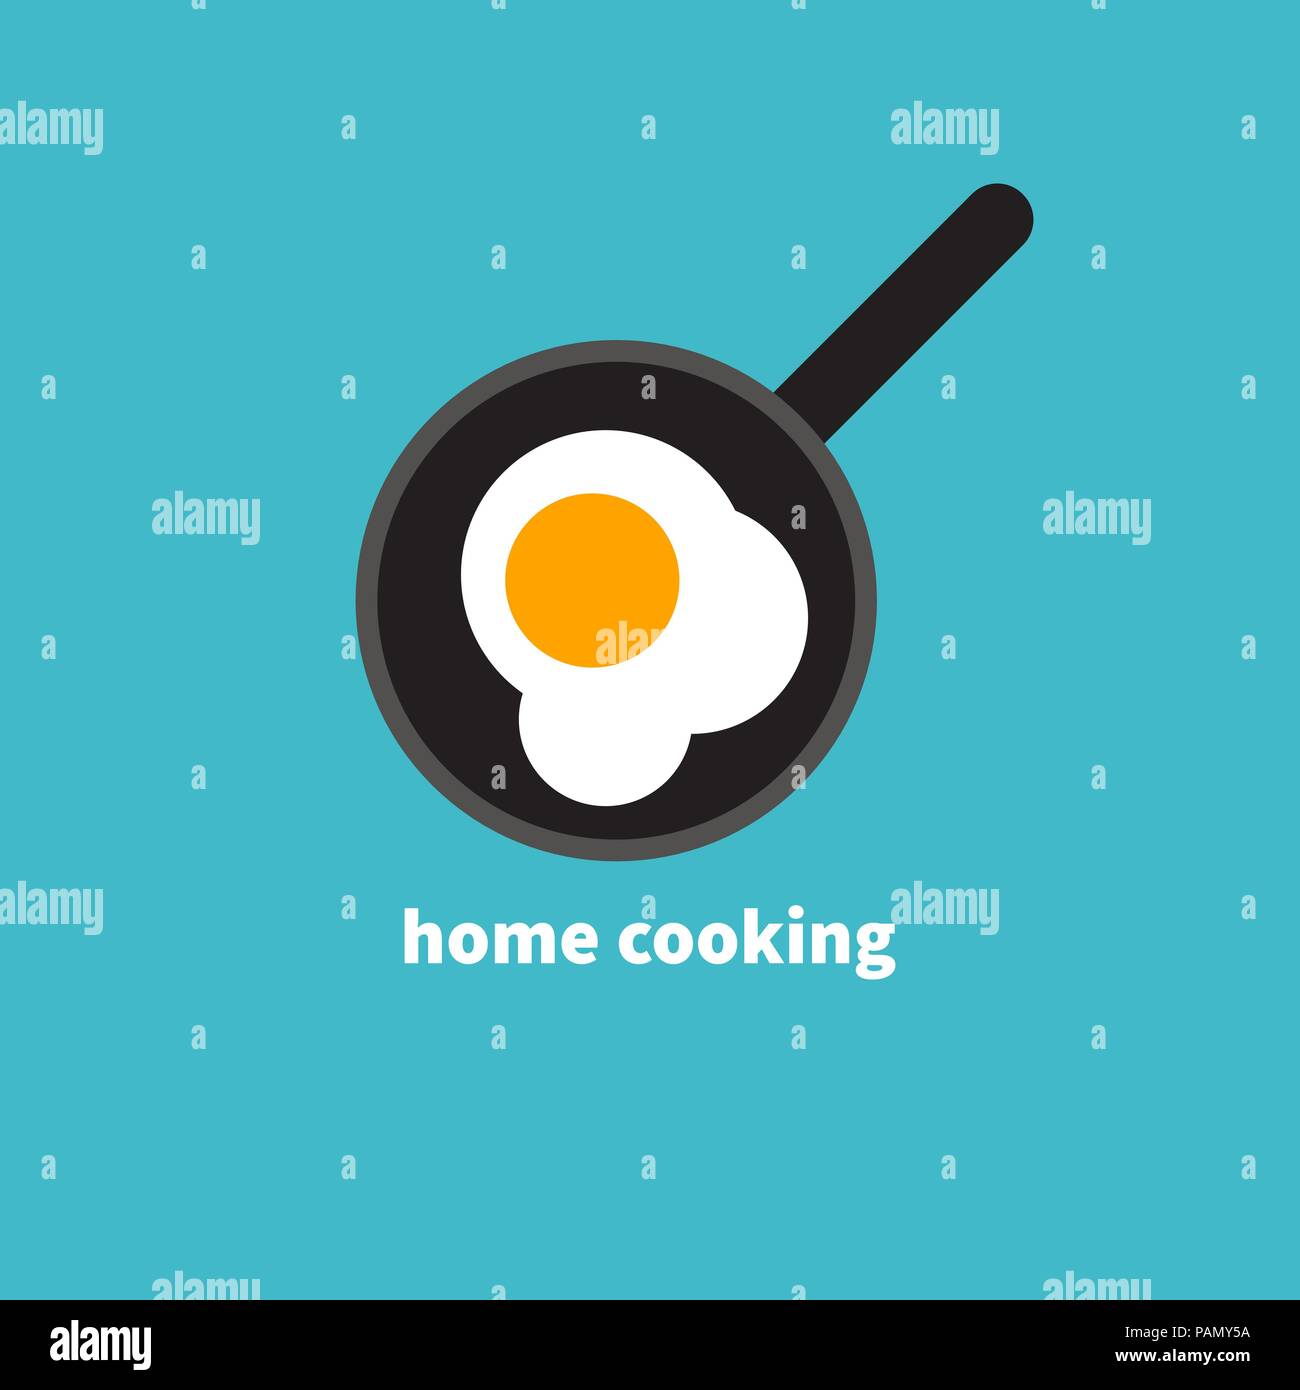 Home cooked food, fried eggs, fried eggs in frying pan, healthy breakfast, home cooking breakfast in cafe, omelet icon. Vector illustration - Stock Vector